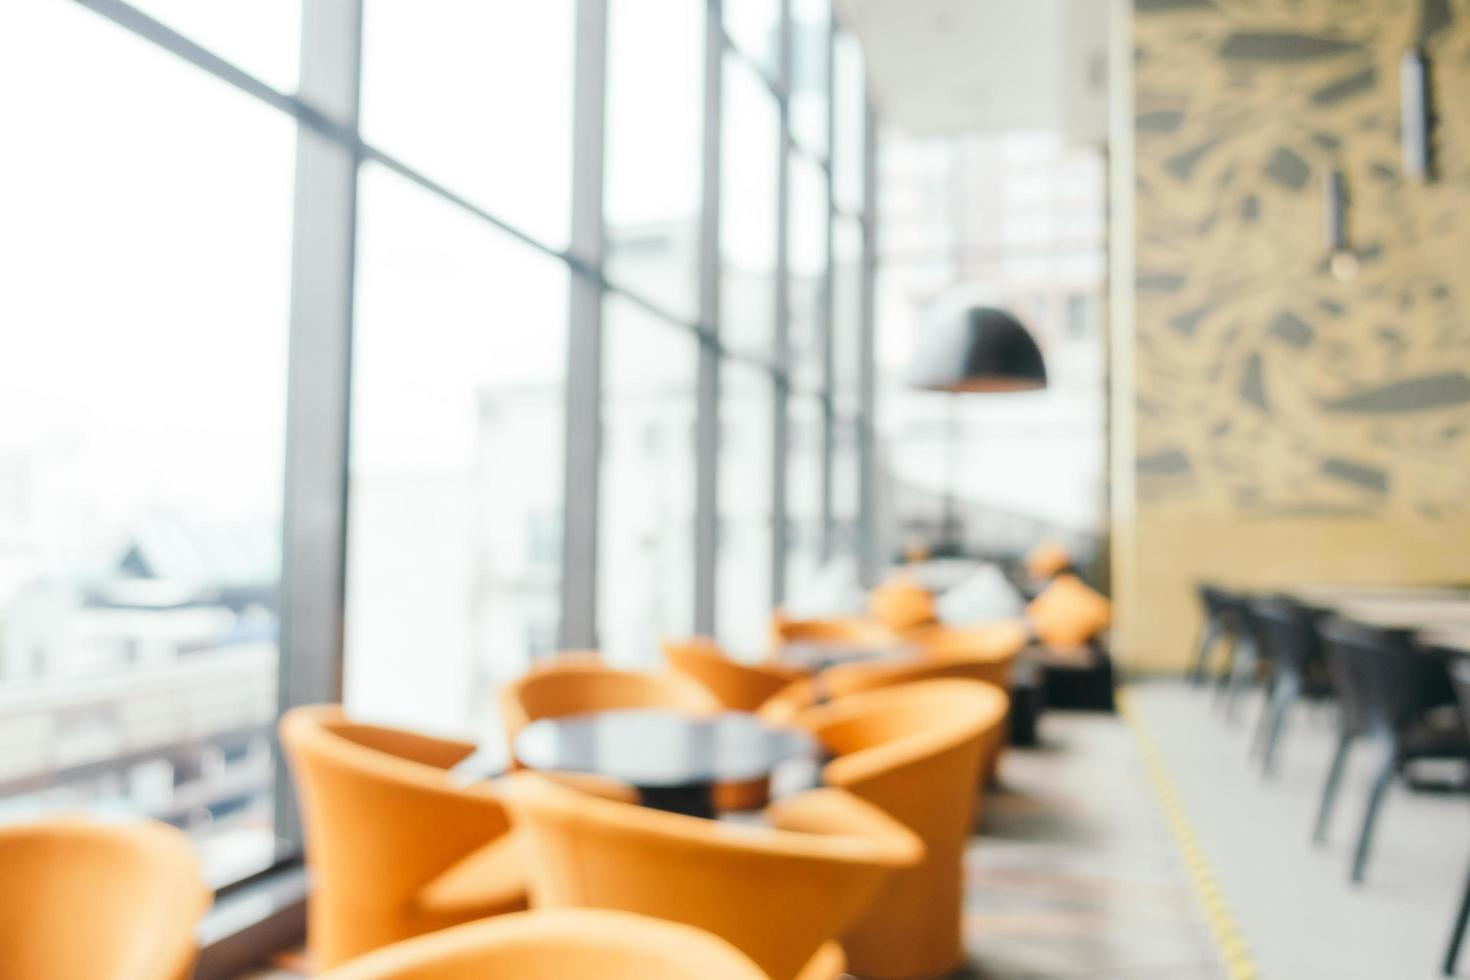 Abstract blur and defocused restaurant and coffee interior photo